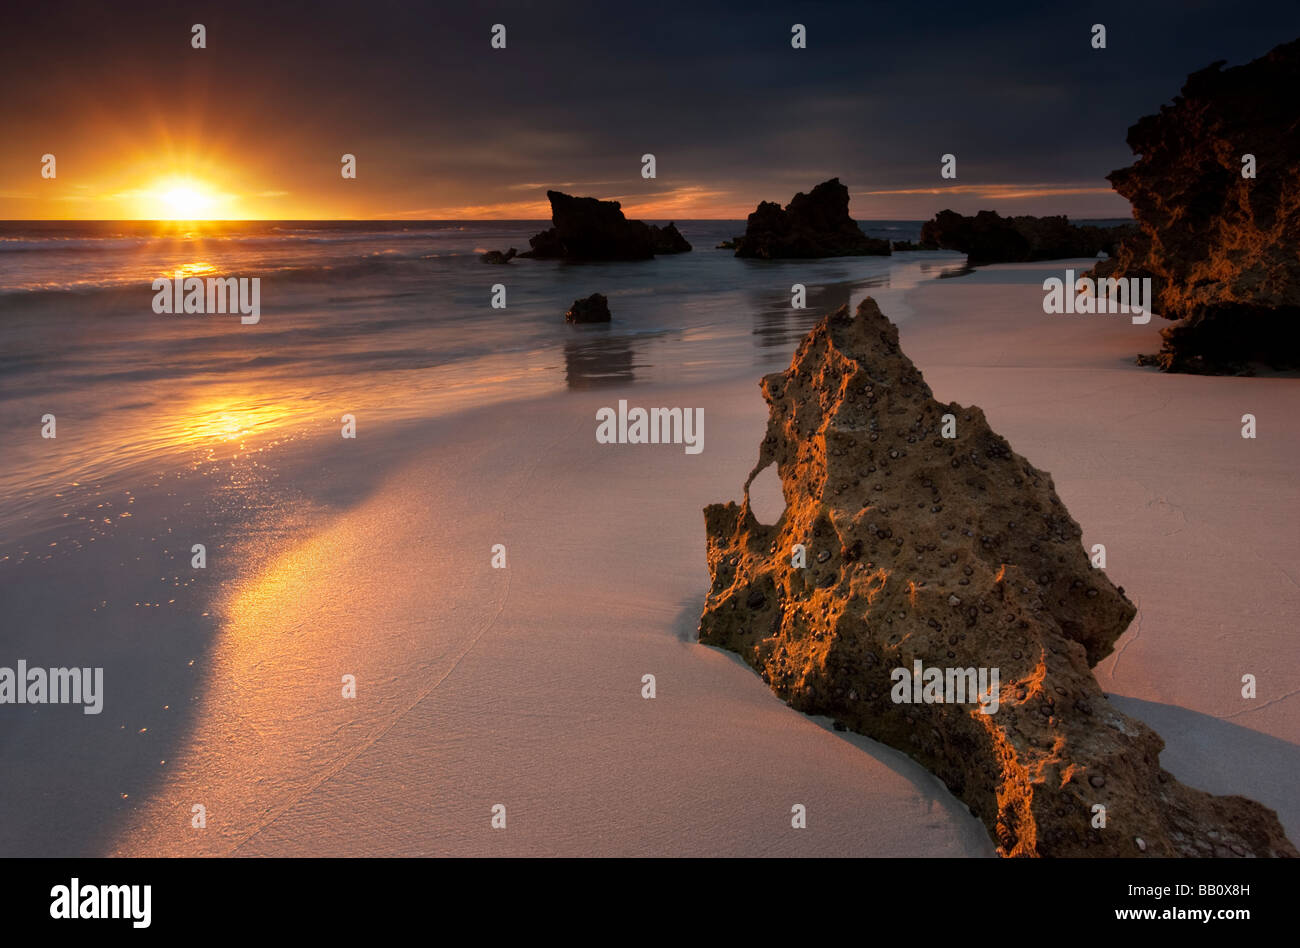 The sun dropping into the Indian Ocean at Trigg Beach in Perth, Western Australia - Stock Image